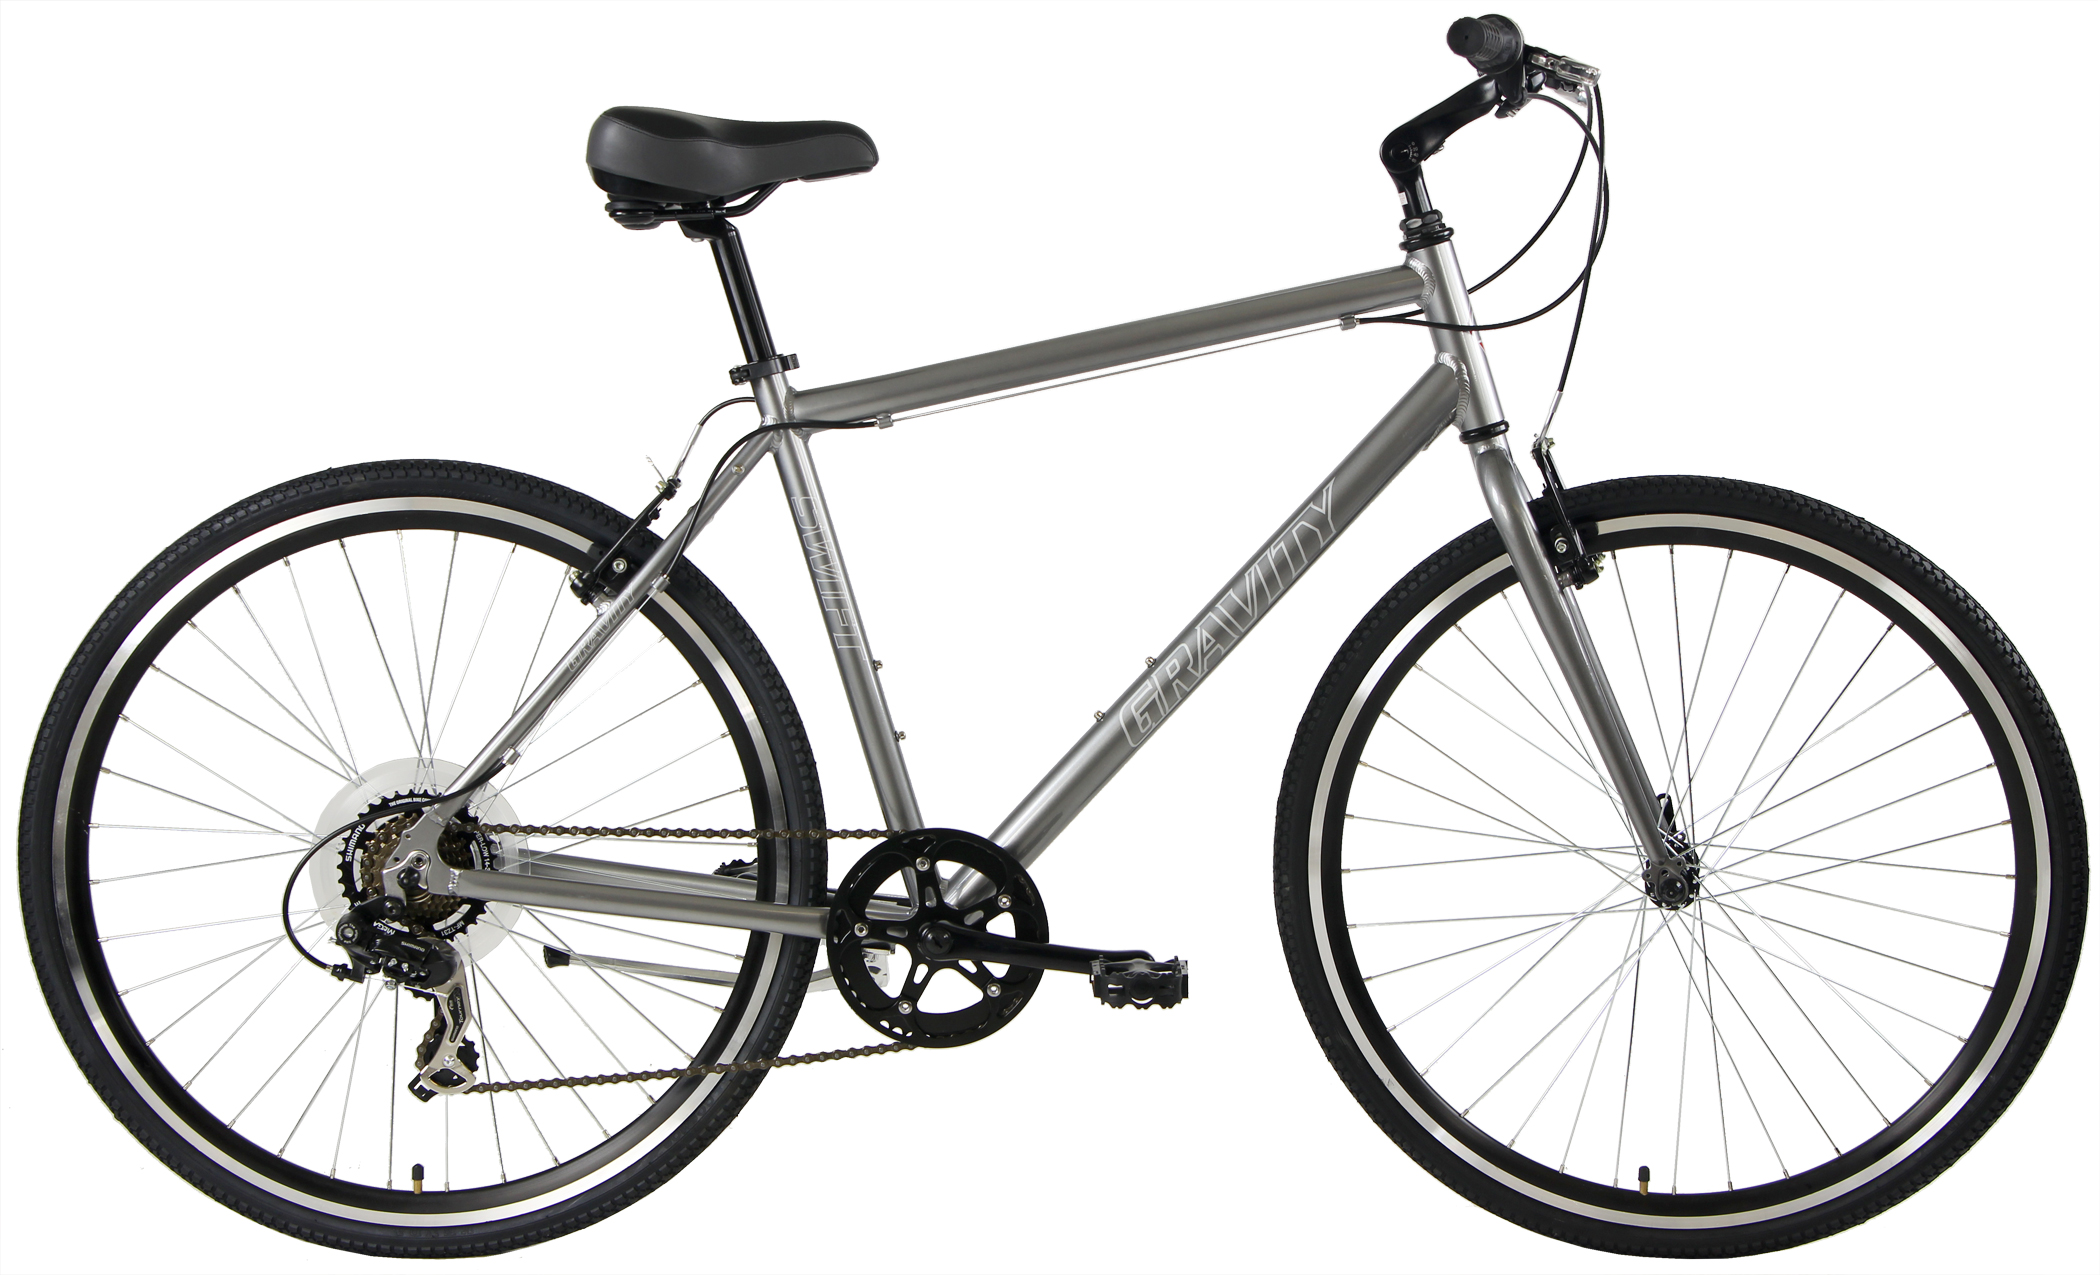 Bikes Gravity Swift 7 Flat Bar Super Commuter Image